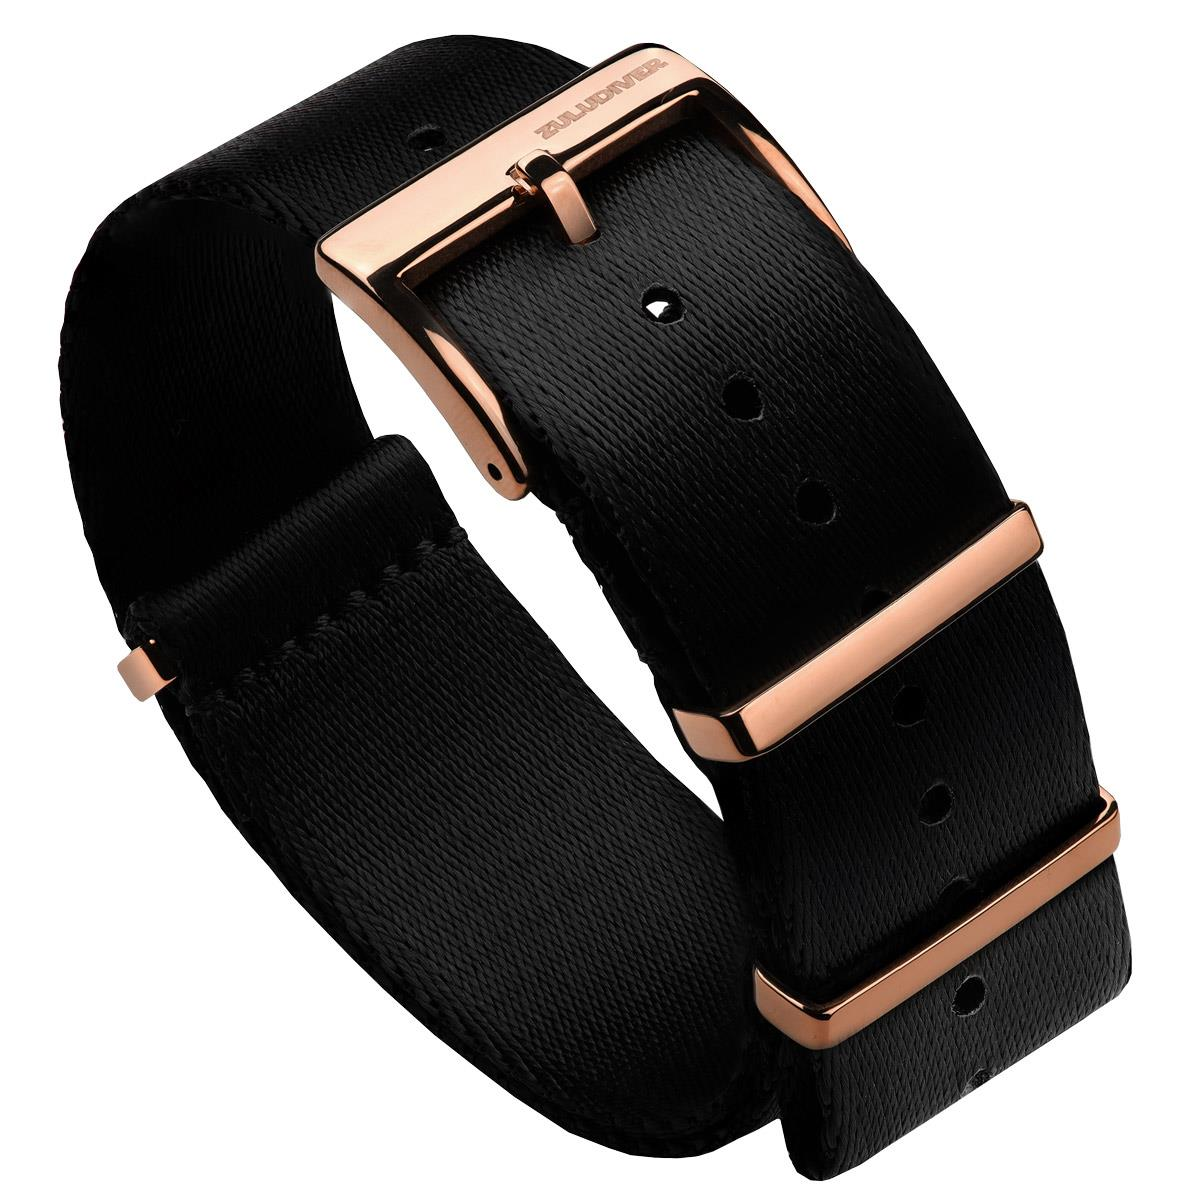 LIMITED EDITION Premium ZULUDIVER NATO Watch Strap, Rose Gold Hardware